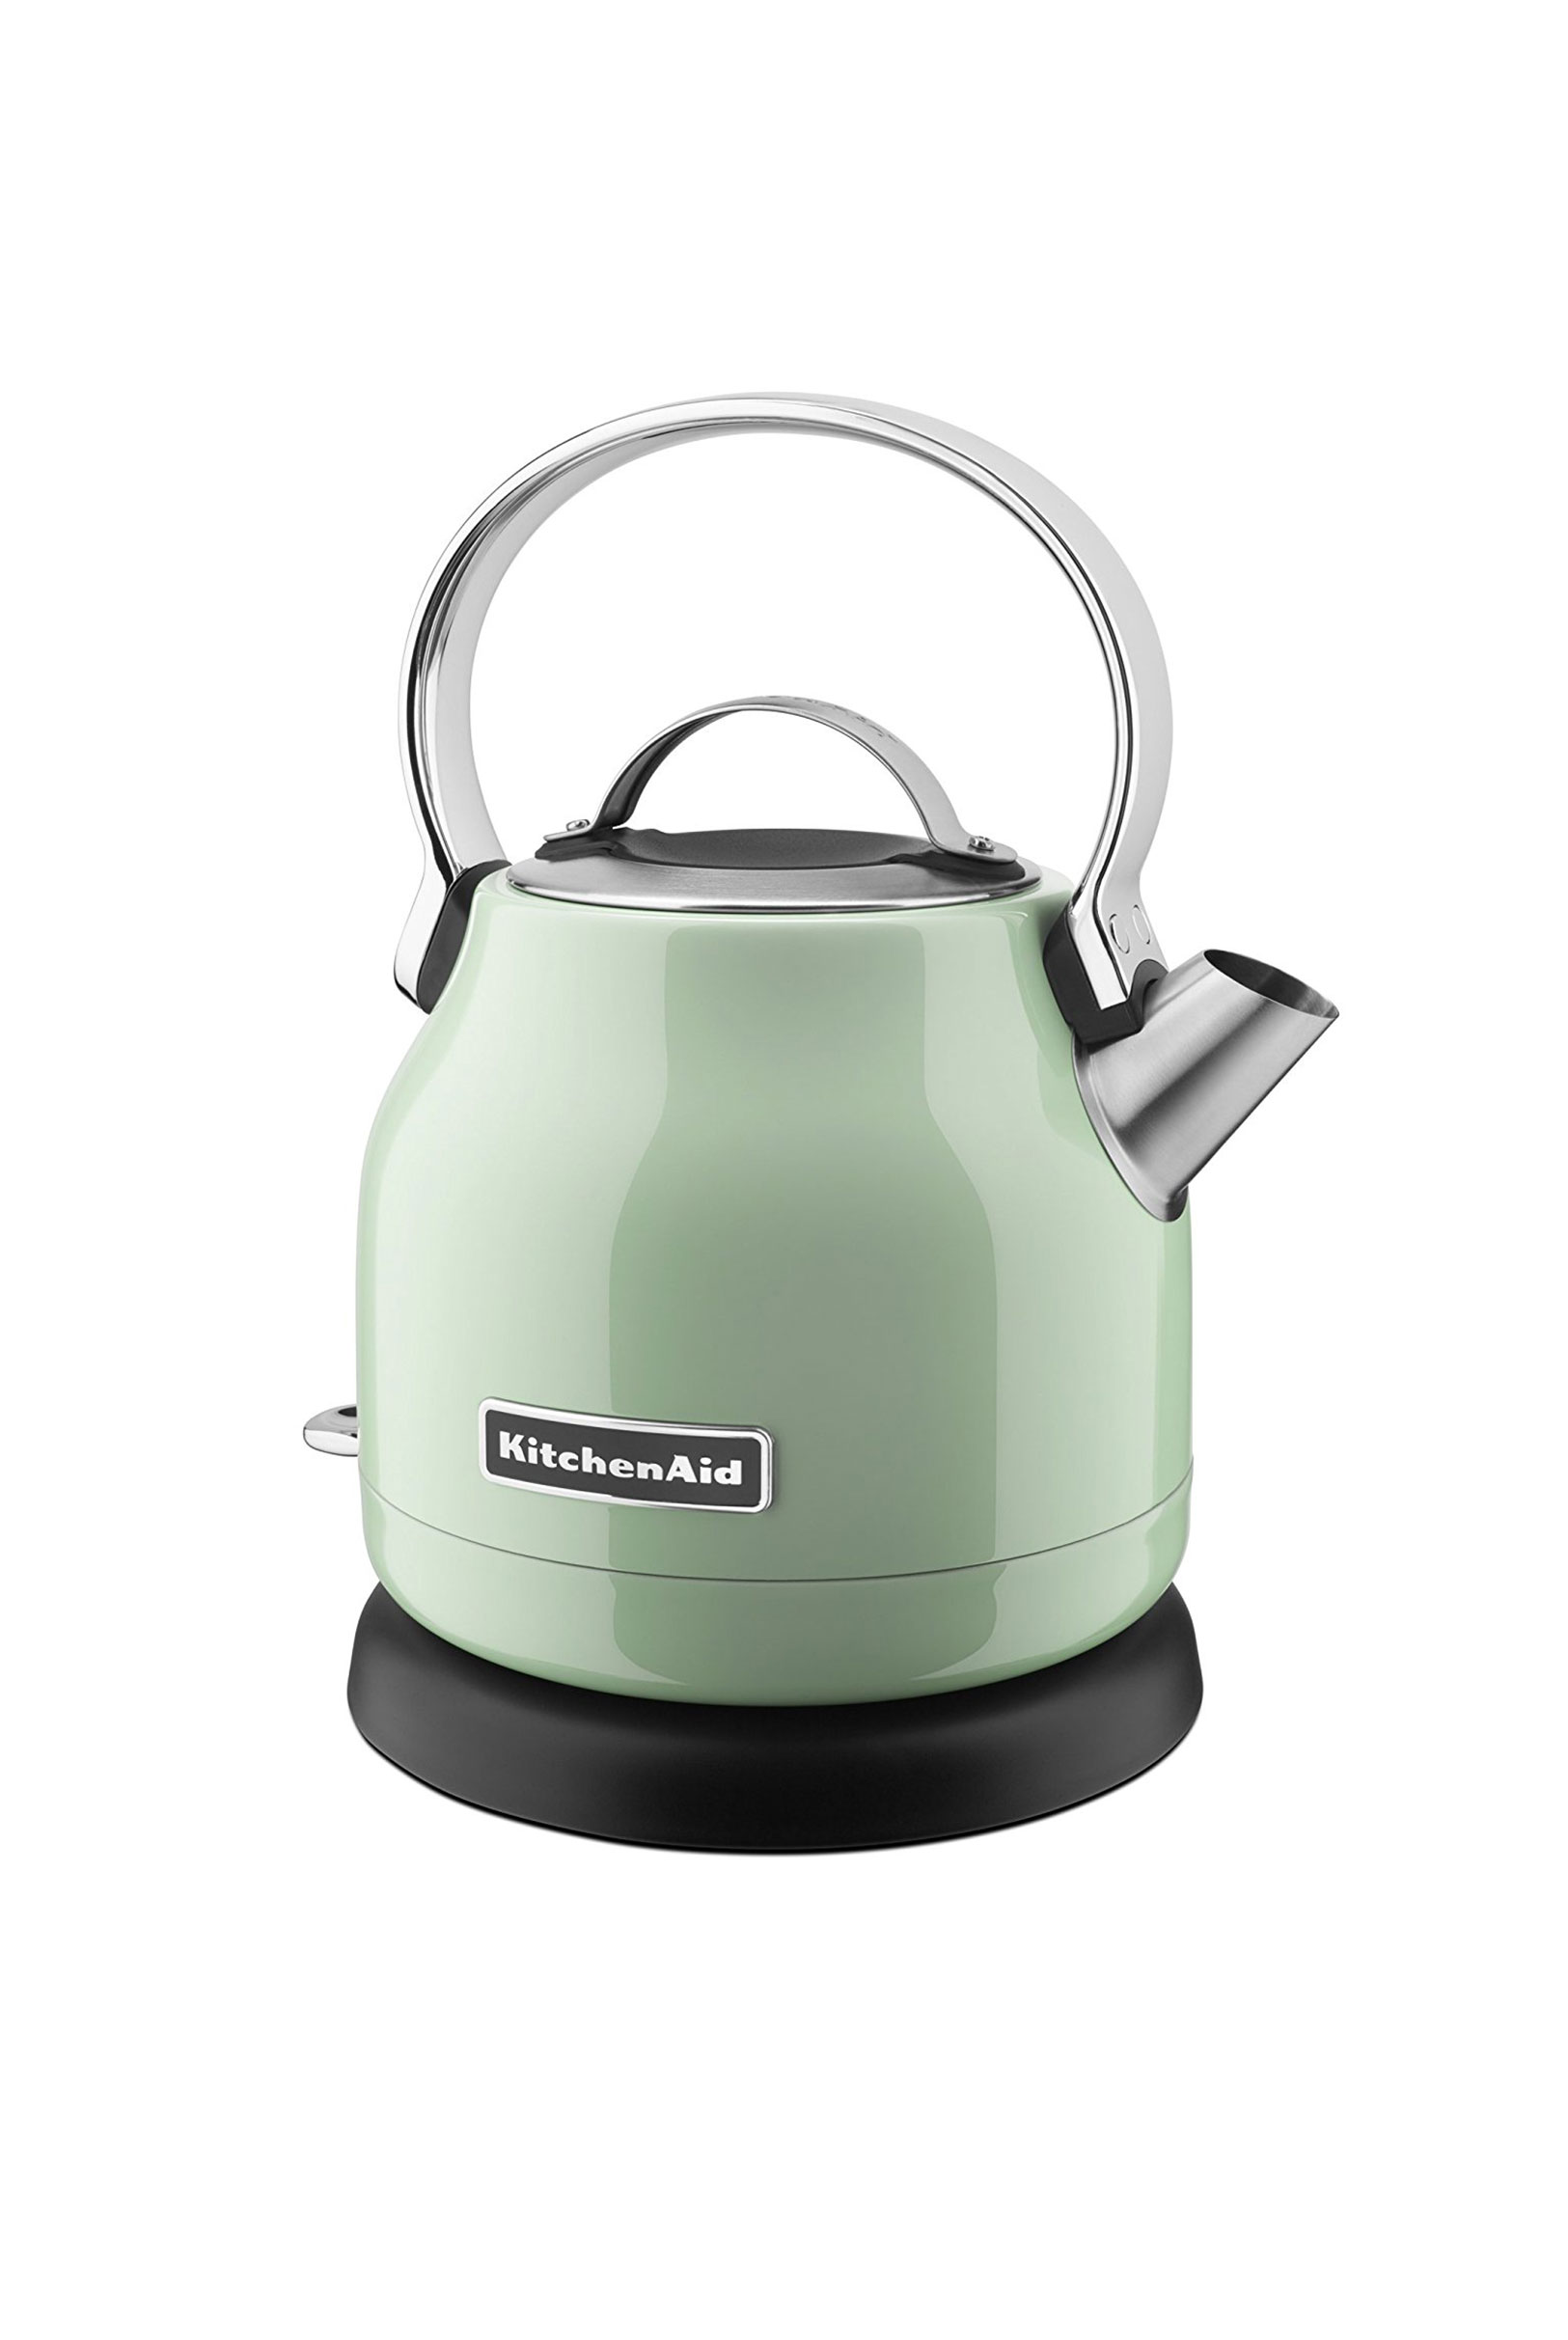 KitchenAid-Electric-Kettle.jpg